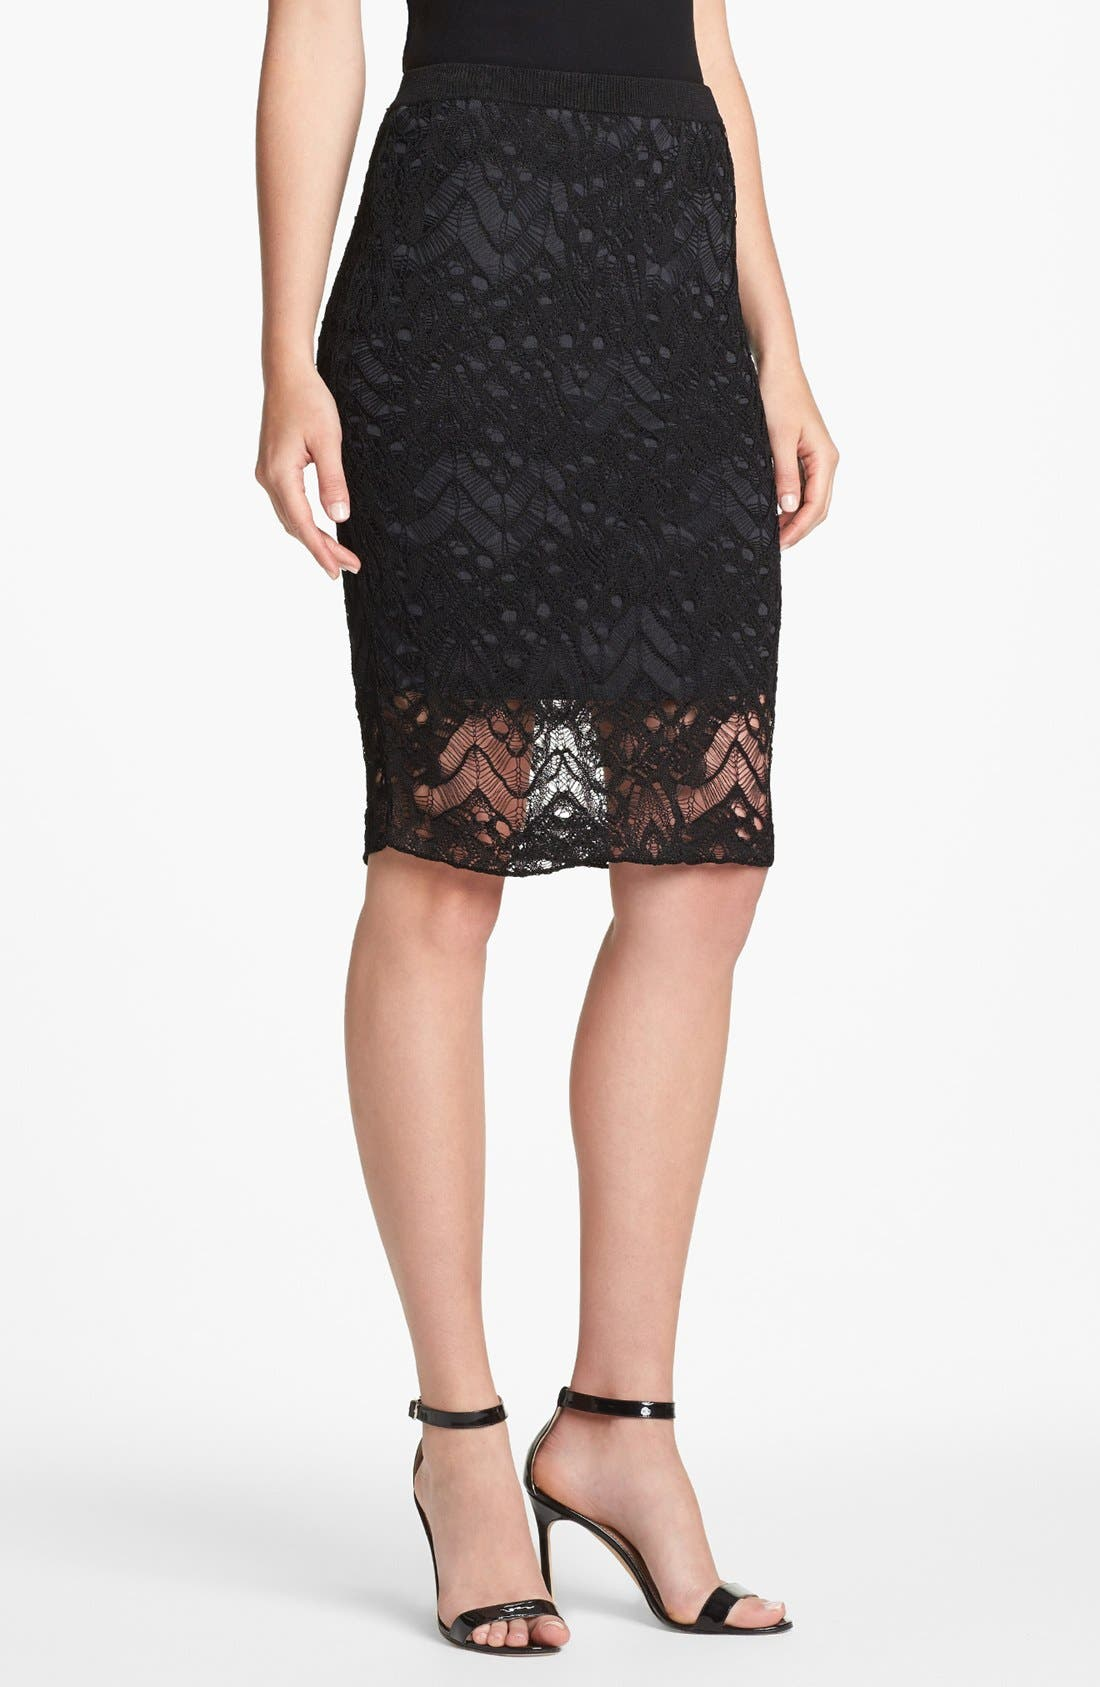 Alternate Image 1 Selected - Eileen Fisher Lace Skirt (Petite)